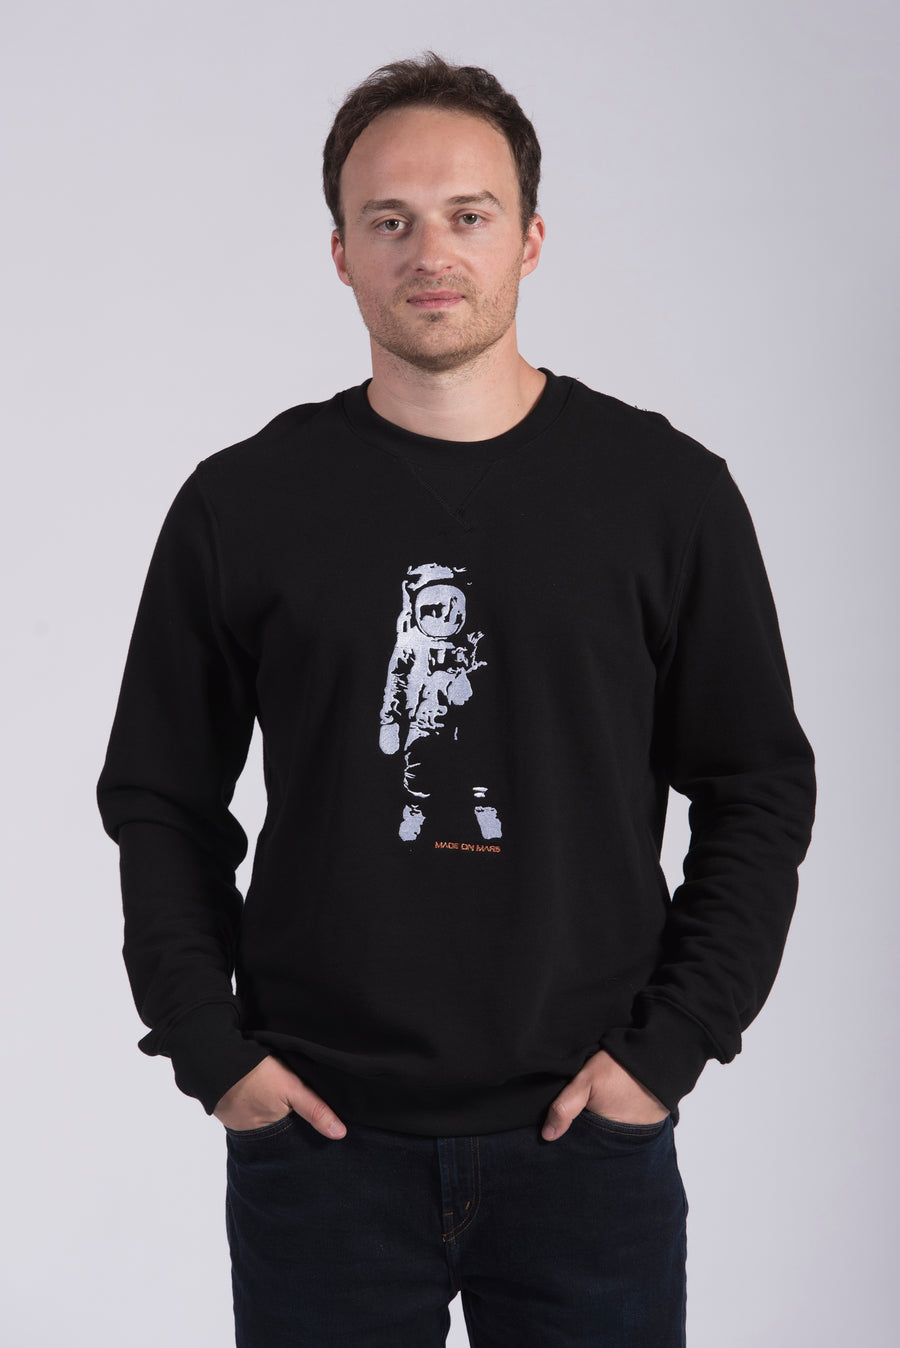 White Apollo 11 Embroidery Black Cotton Men's Sweatshirt STEM